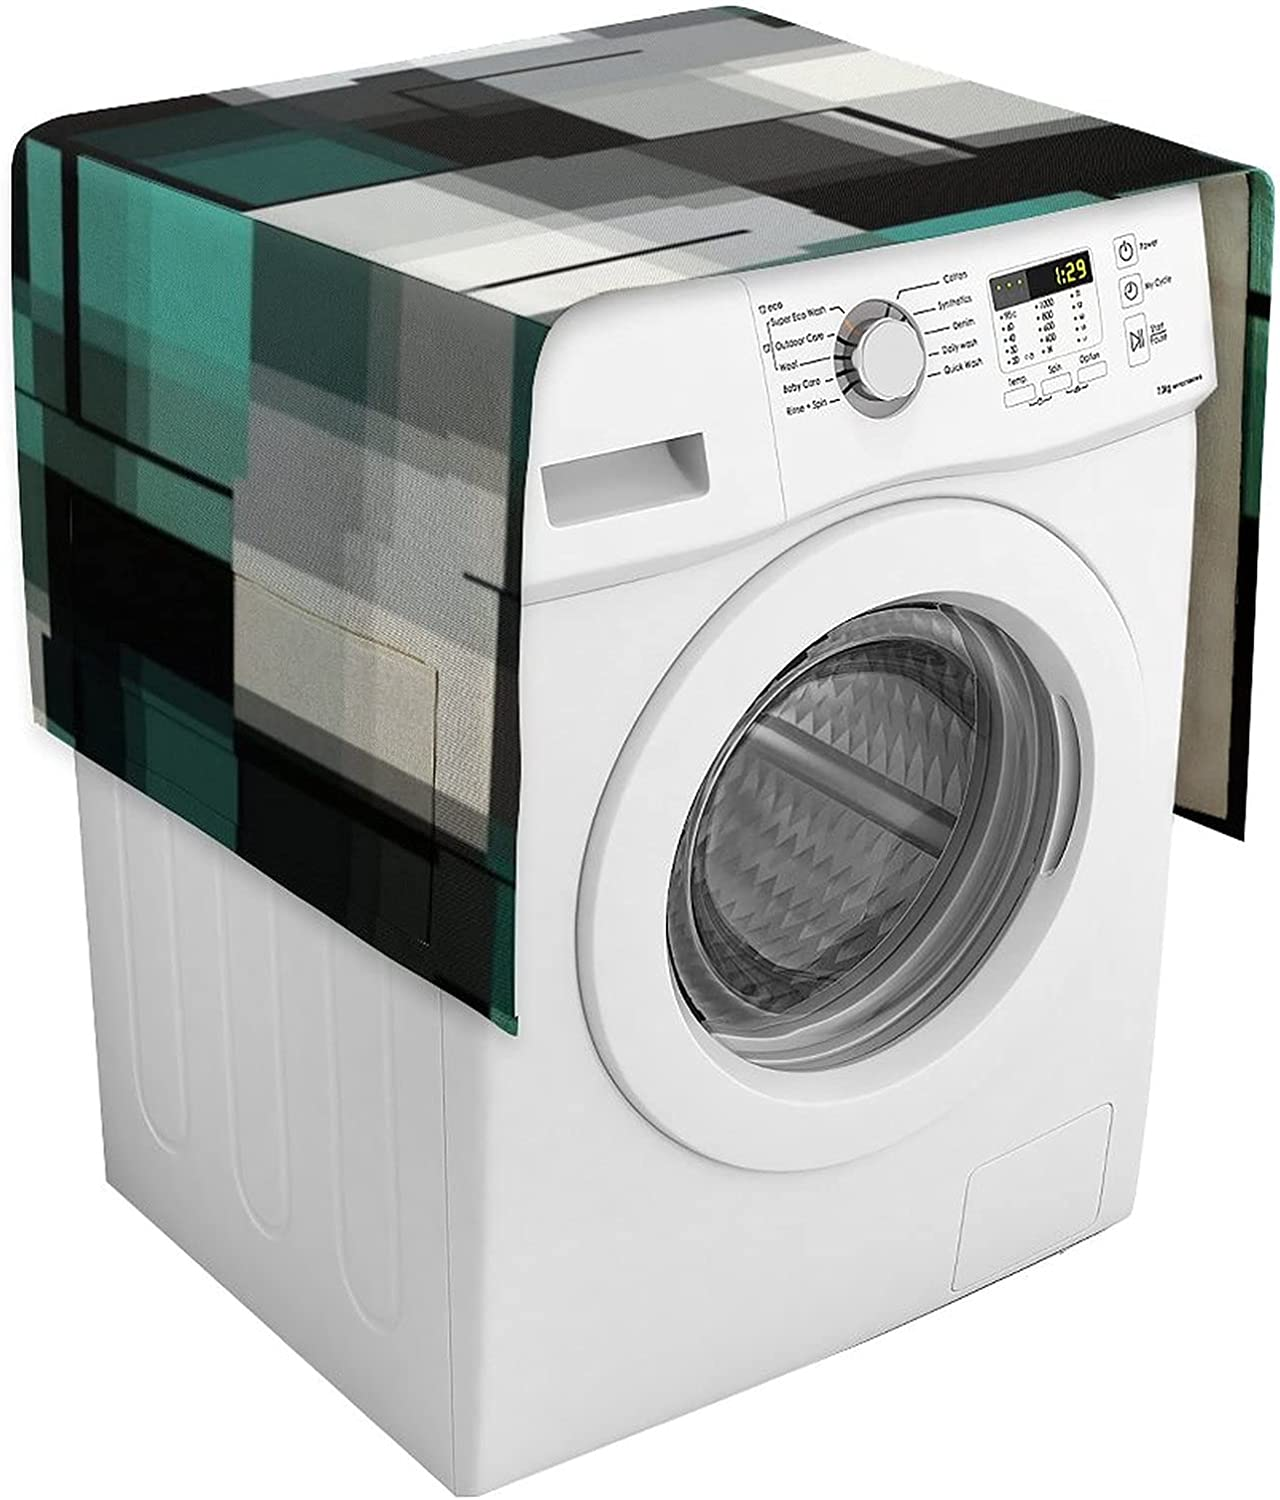 Multi-Purpose Quantity limited Washing Machine Covers Appliance Columbus Mall Protector Washer